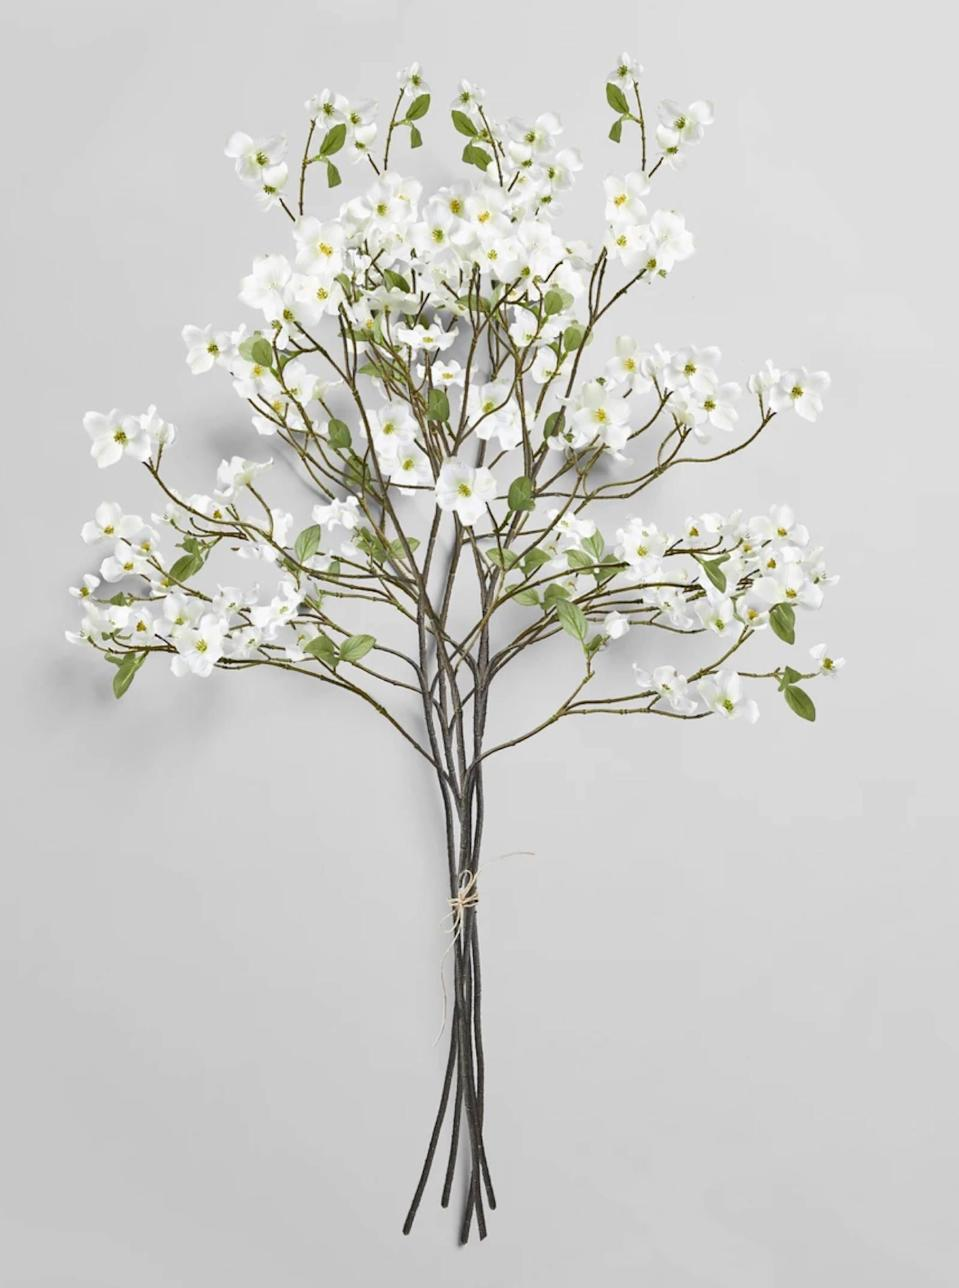 "Don't underestimate the power of a faux floral. These flowering dogwood branches are so natural-looking—they have realistic details like faded leaves and bug holes—and last years to come. They also add a sculptural element to the room when placed in a <a href=""https://www.glamour.com/gallery/cool-vases?mbid=synd_yahoo_rss"" rel=""nofollow noopener"" target=""_blank"" data-ylk=""slk:large vase"" class=""link rapid-noclick-resp"">large vase</a>. Free shipping is available on all orders over $100, and deliveries arrive within three business days. $112, Ecofaux Dogwood Bunch. <a href=""https://bloomist.com/collections/botanicals/products/ecofaux-dogwood-bunch"" rel=""nofollow noopener"" target=""_blank"" data-ylk=""slk:Get it now!"" class=""link rapid-noclick-resp"">Get it now!</a>"